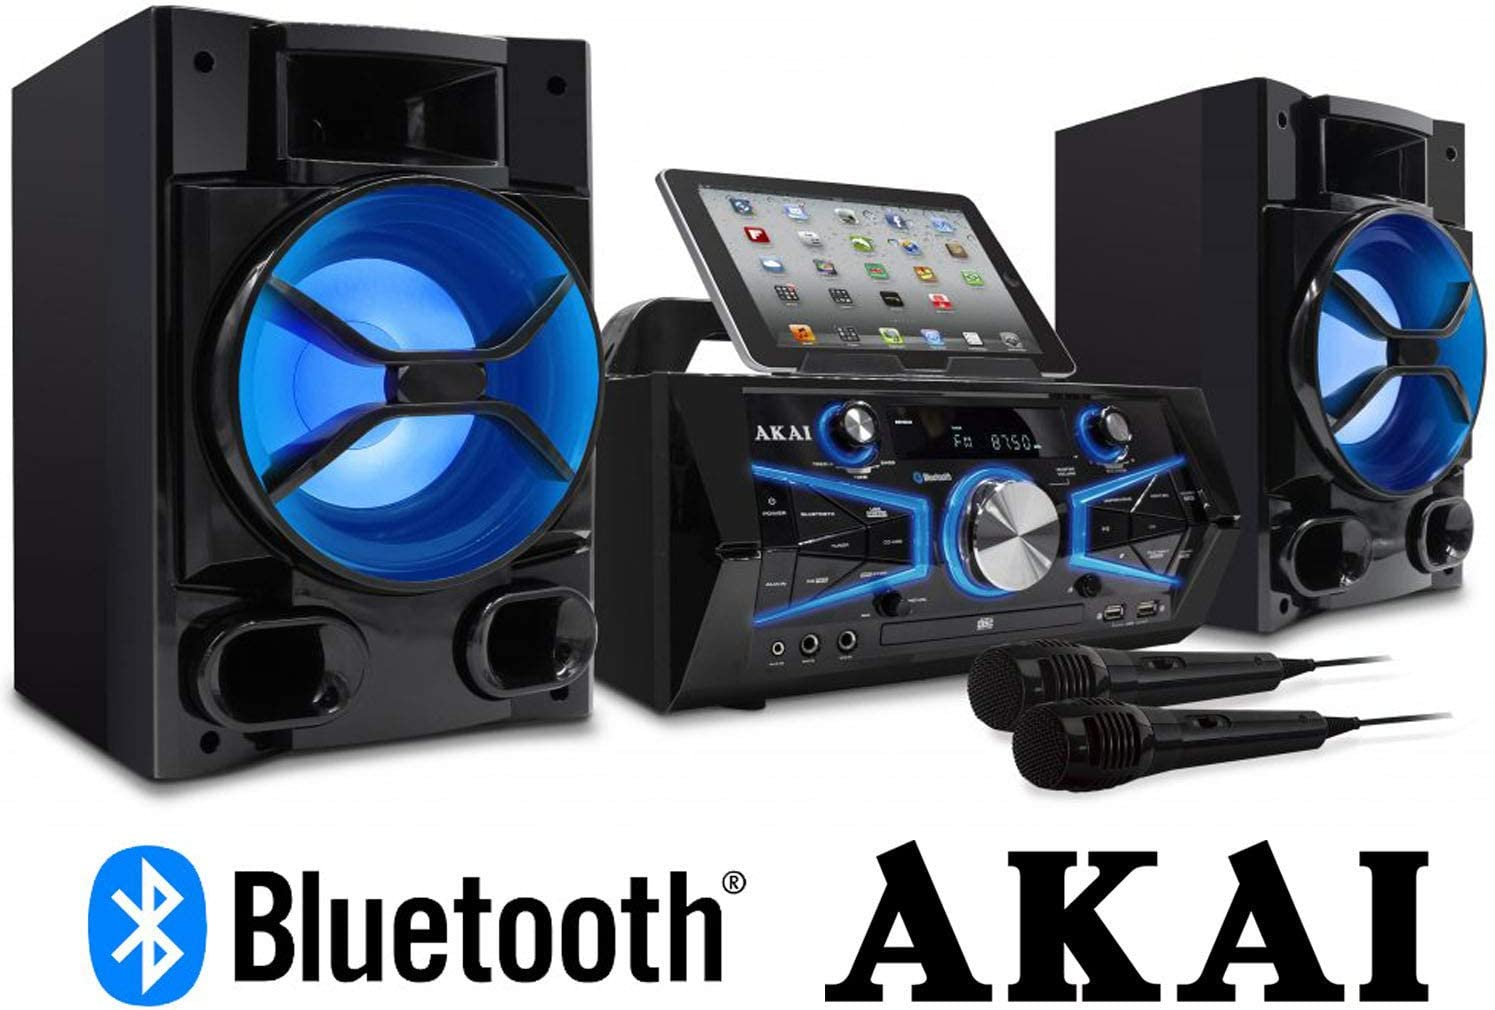 Akai KS5500-BT Karaoke Mini System 150 Watts CD&G with Lightning Effect Limited Edition 71sRQSFTYOLSL1500_